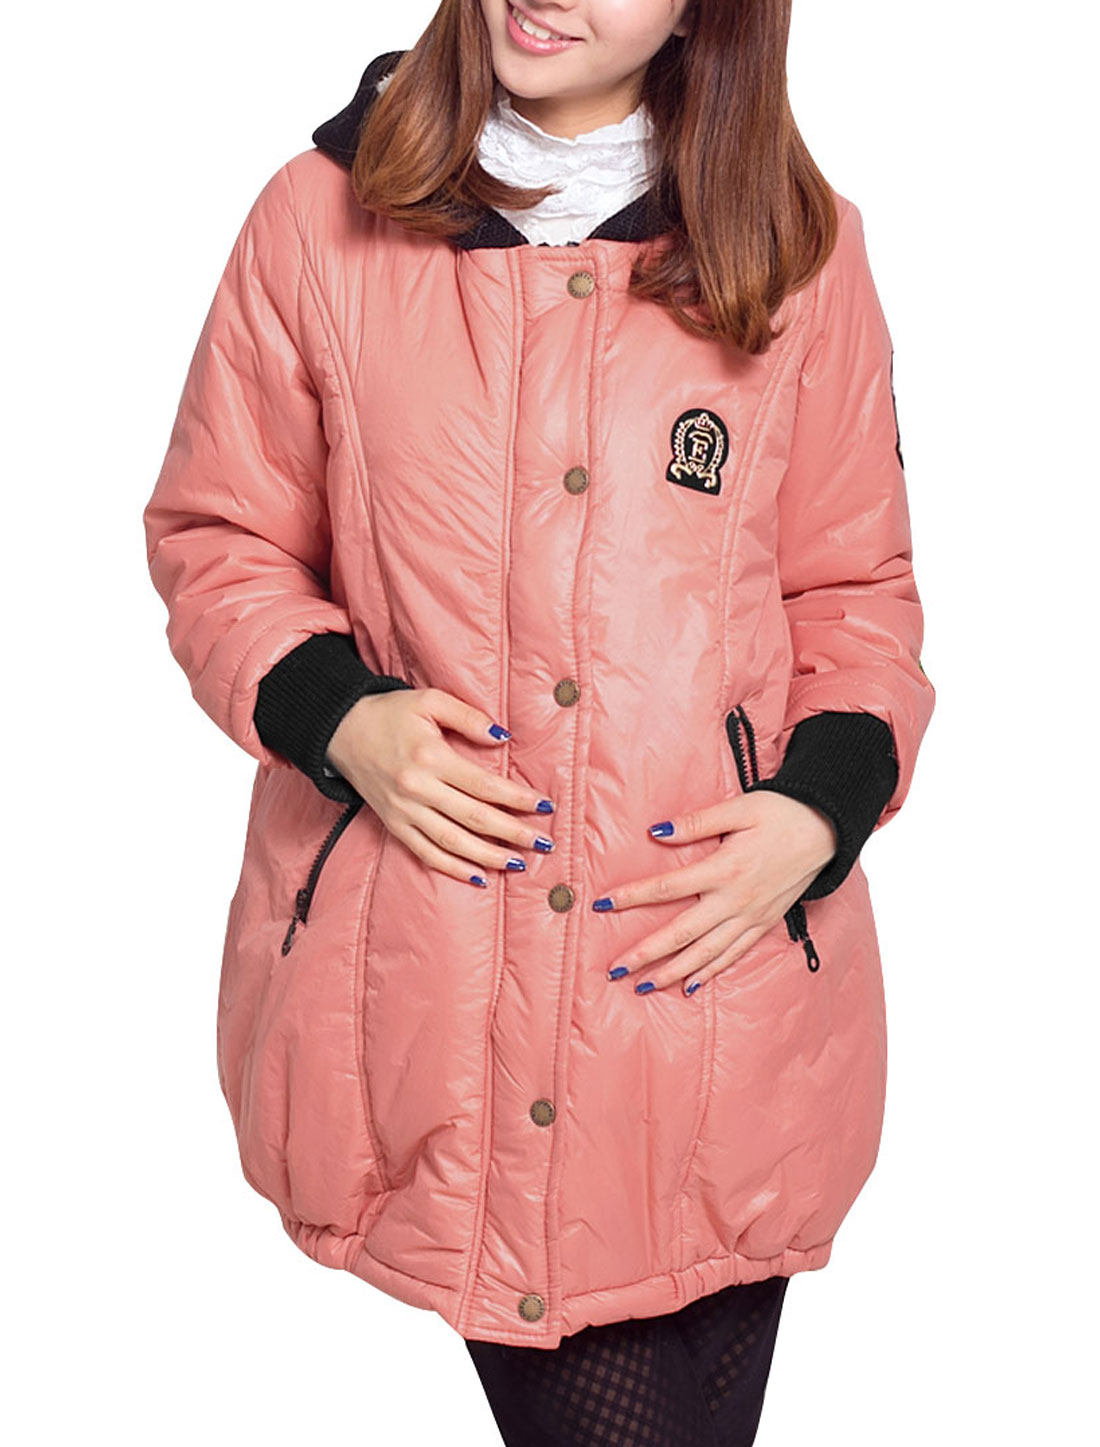 Pregnant Women Zip Up Long-sleeved Warm Thick Pink M Winter Coat